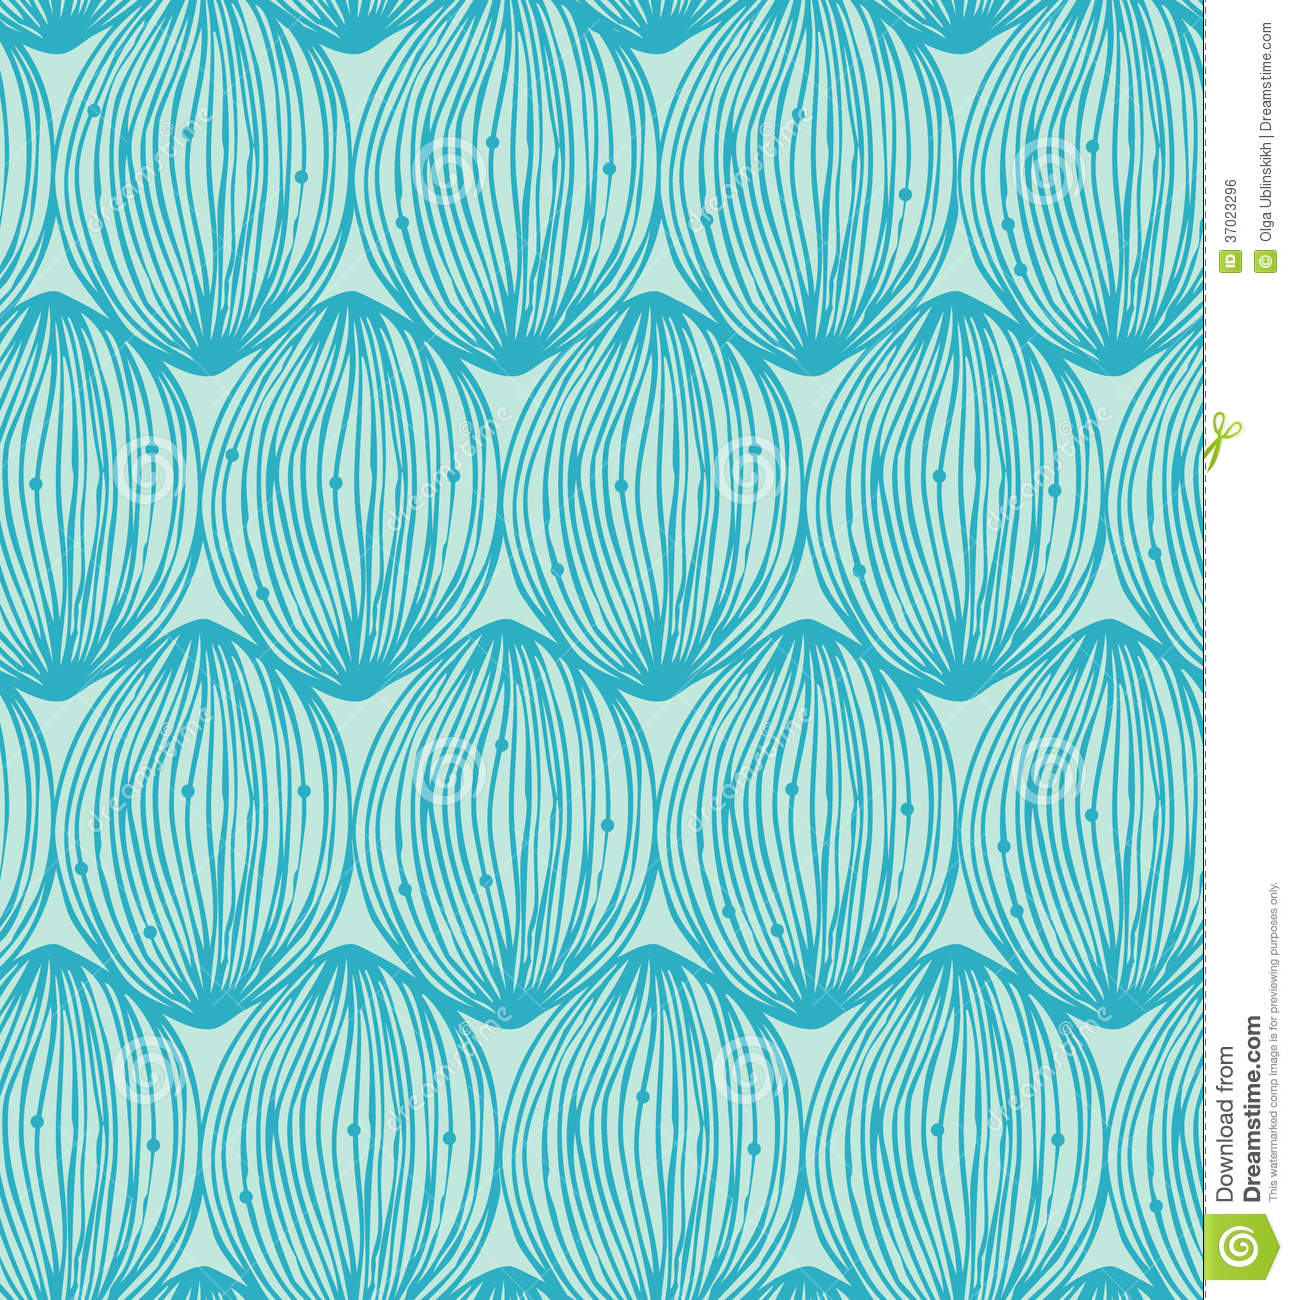 Turquoise Abstract Linear Pattern. Seamless Decorative